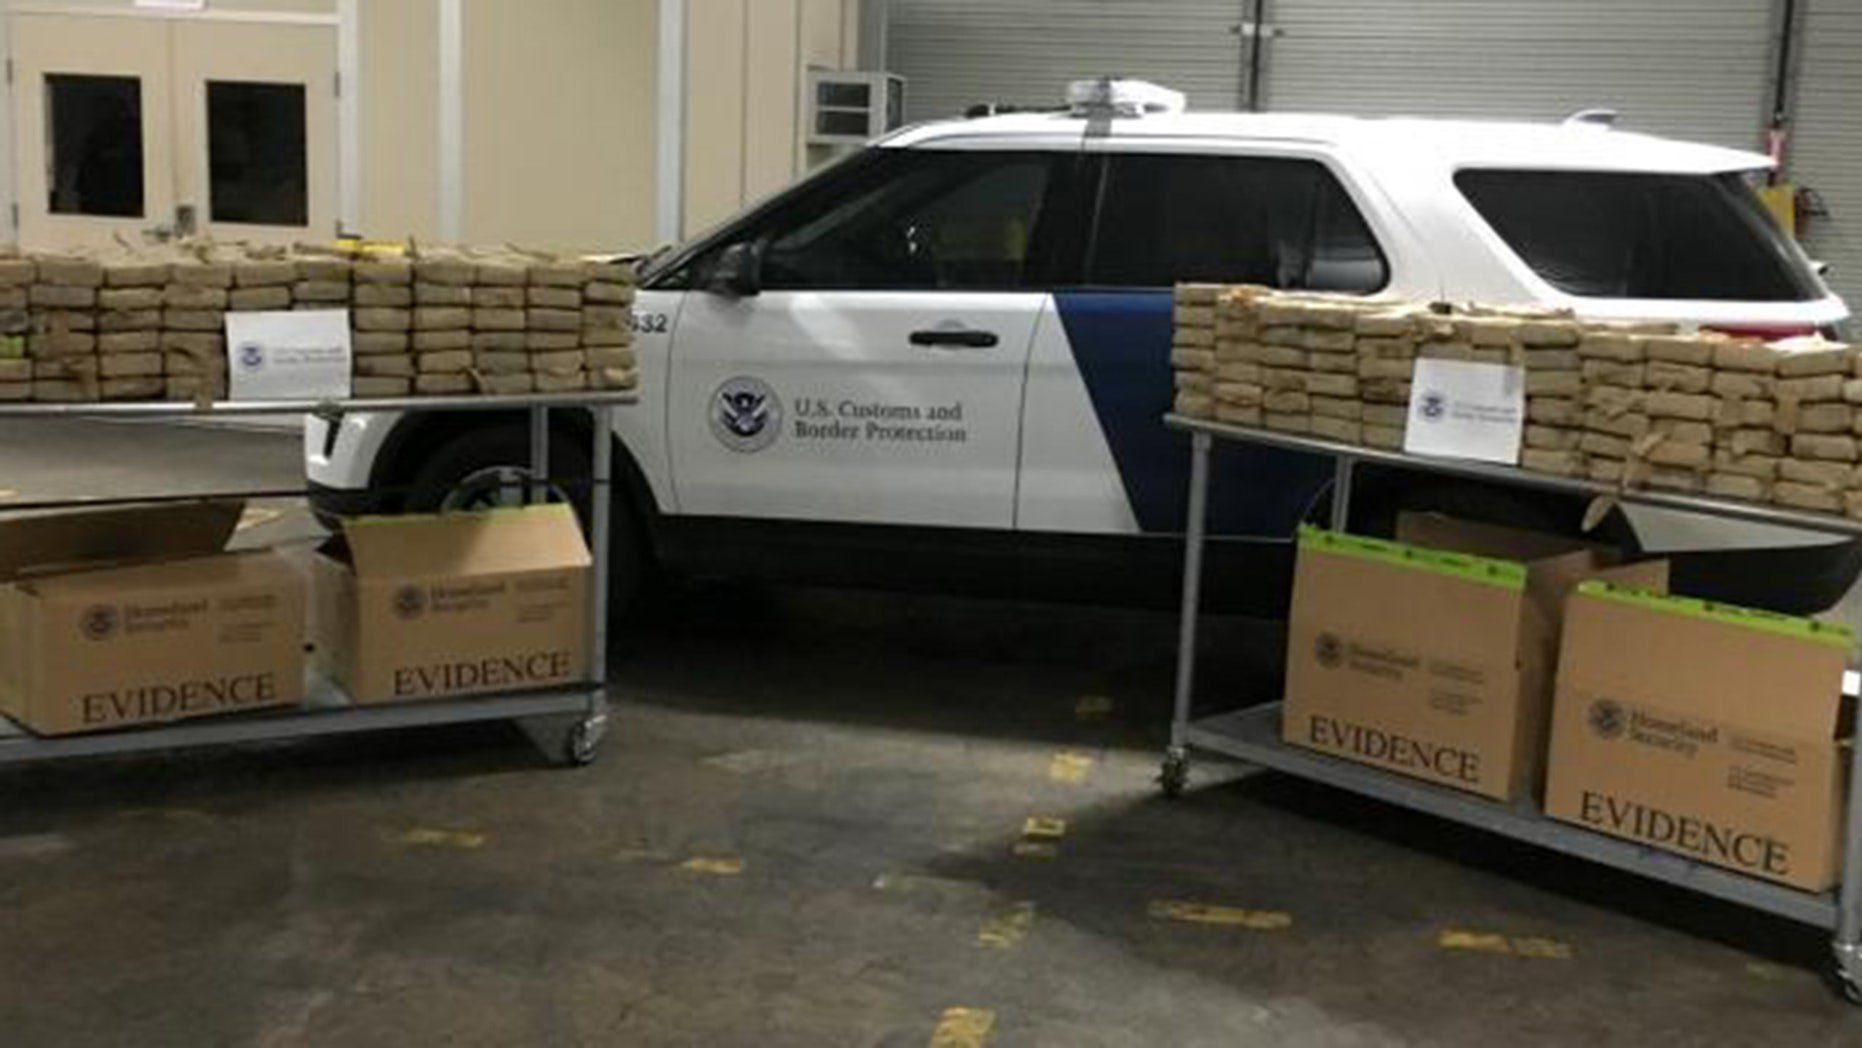 Authorities made a hefty $38 million cocaine seizure on Tuesday that was the largest for the Customs and Border Protection (CBP) Area Port of Philadelphia in more than two decades, officials said.